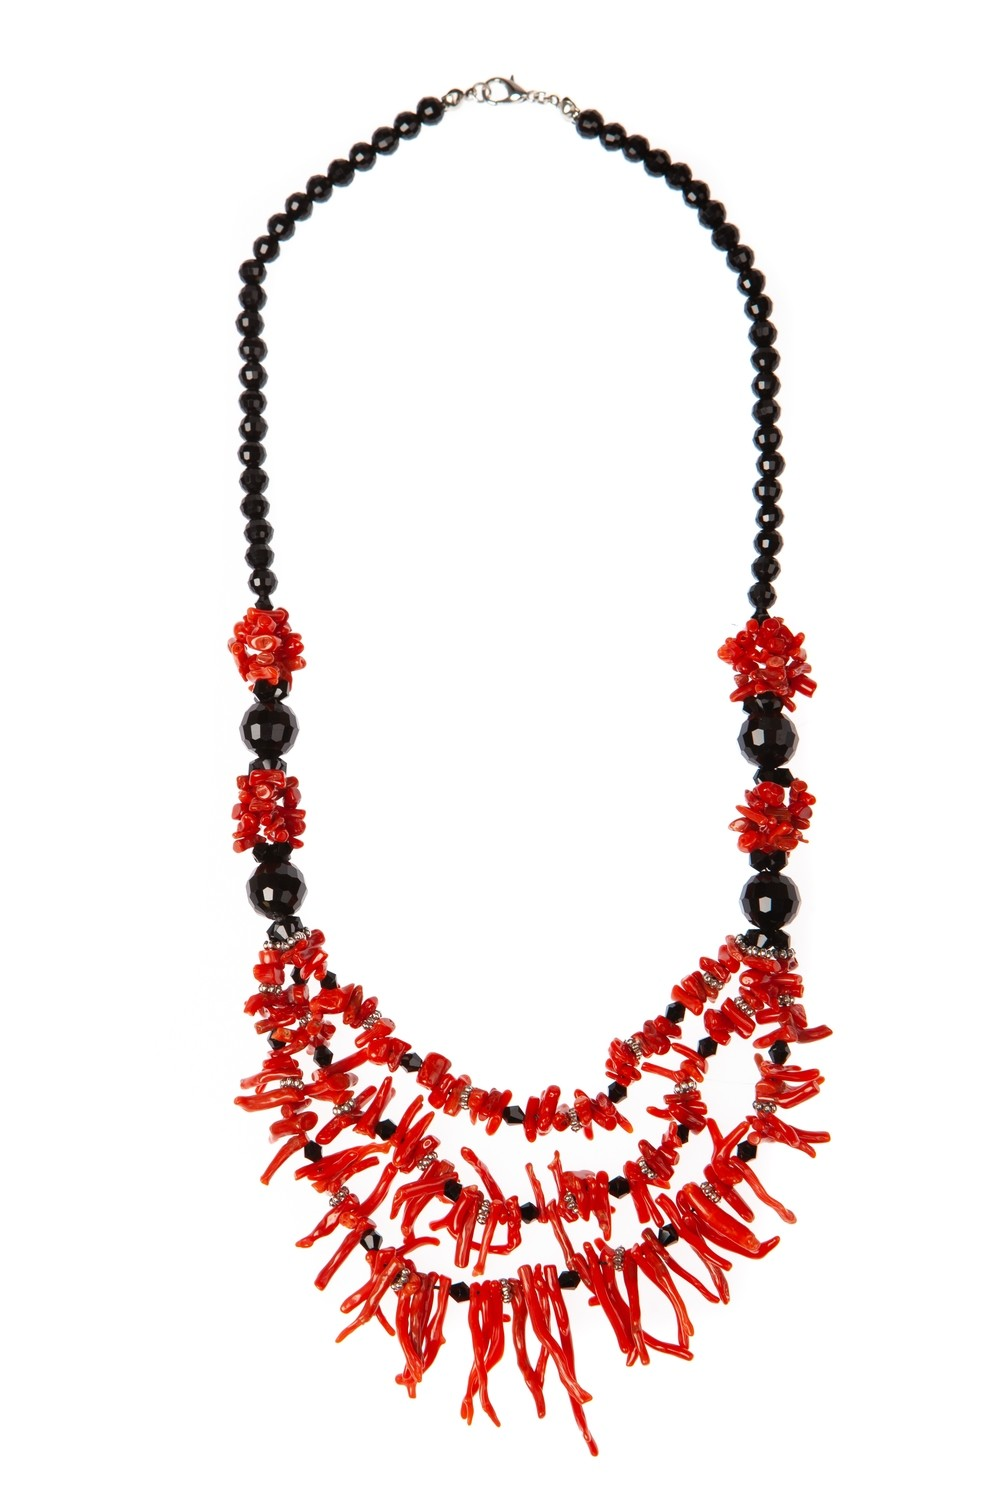 Collana multifilo di agata nera sfaccettata e rametti di corallo Rosso del Mediterraneo - Multi-strand necklace of black faceted agate and Mediterranean red coral branches